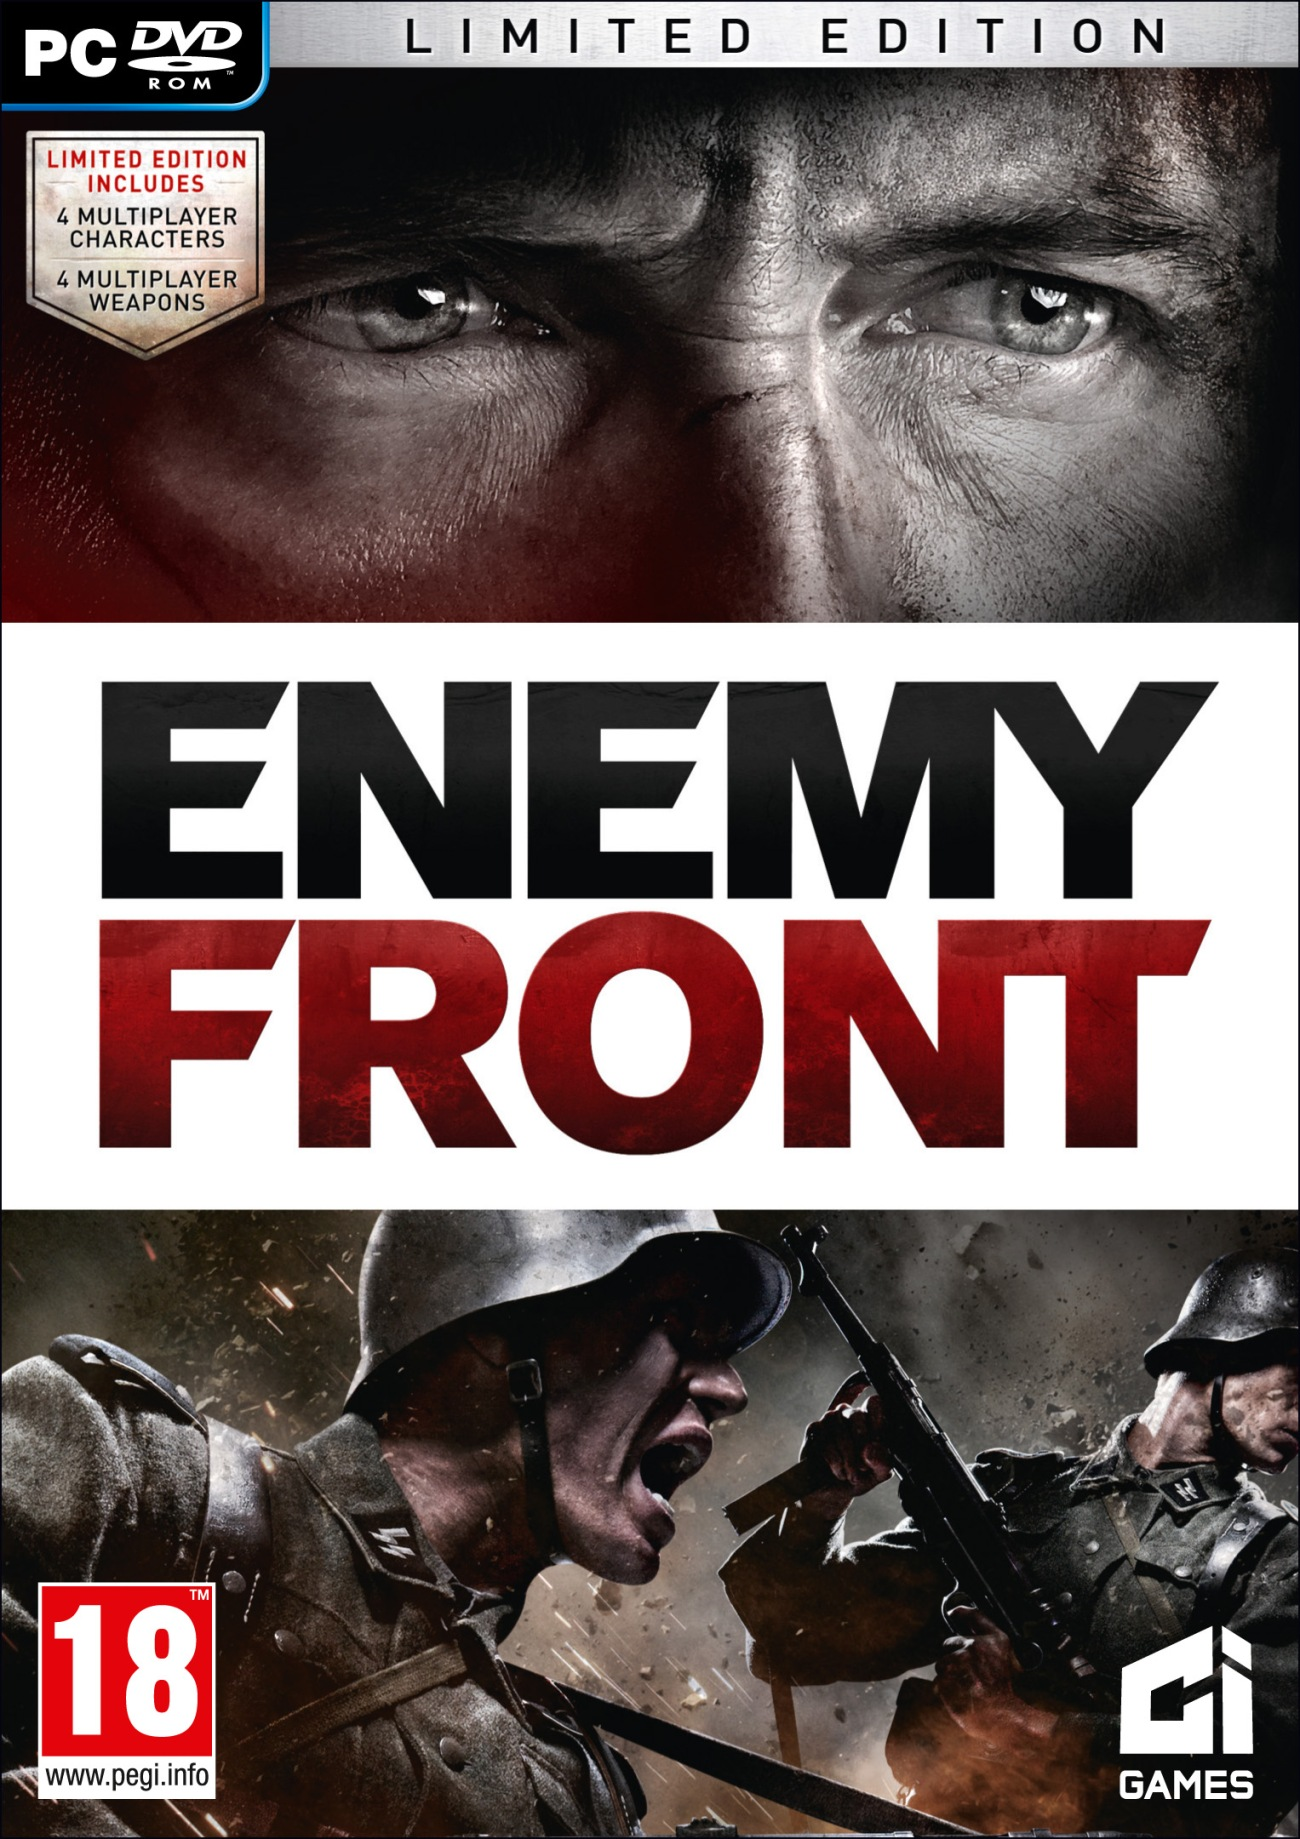 enemyfront_cover14_limited_1399477089